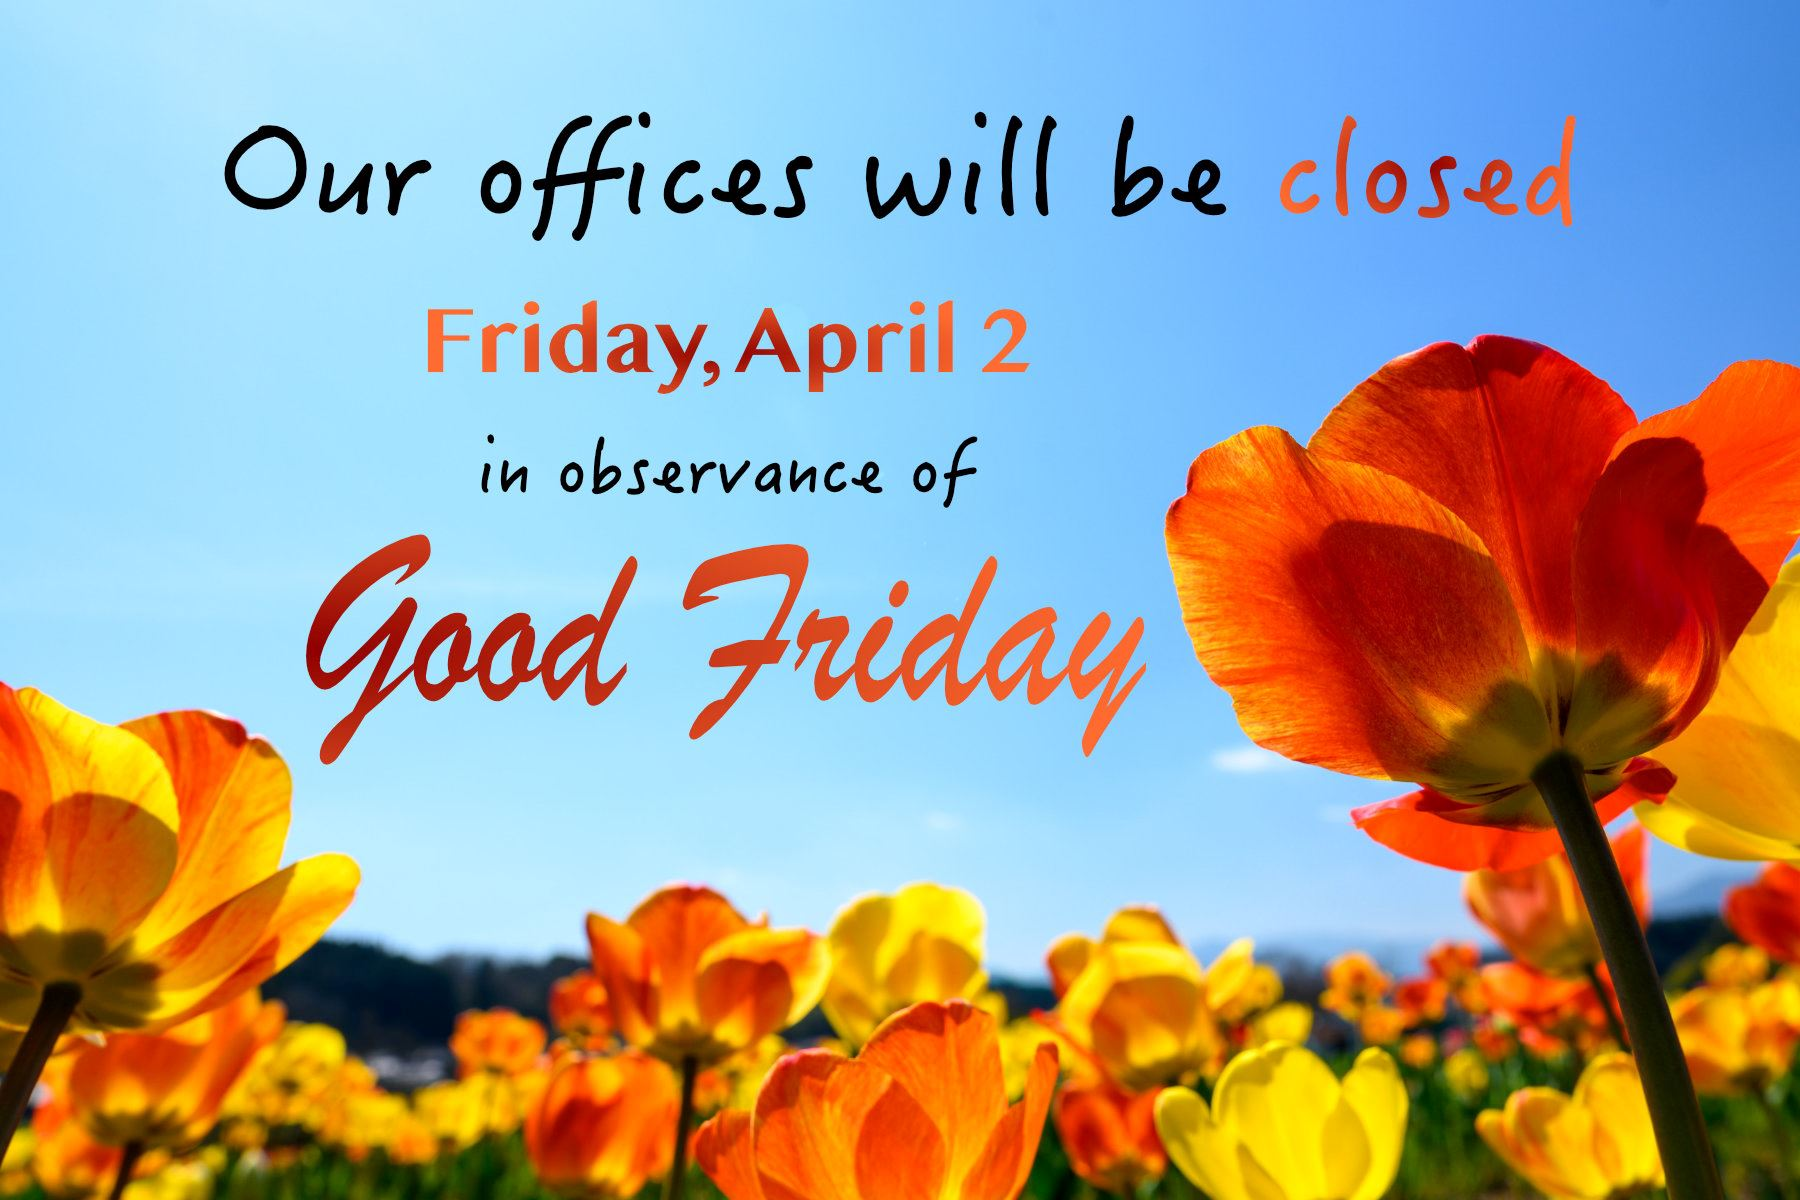 Our offices will be closed Friday, April 2 in observance of Good Friday